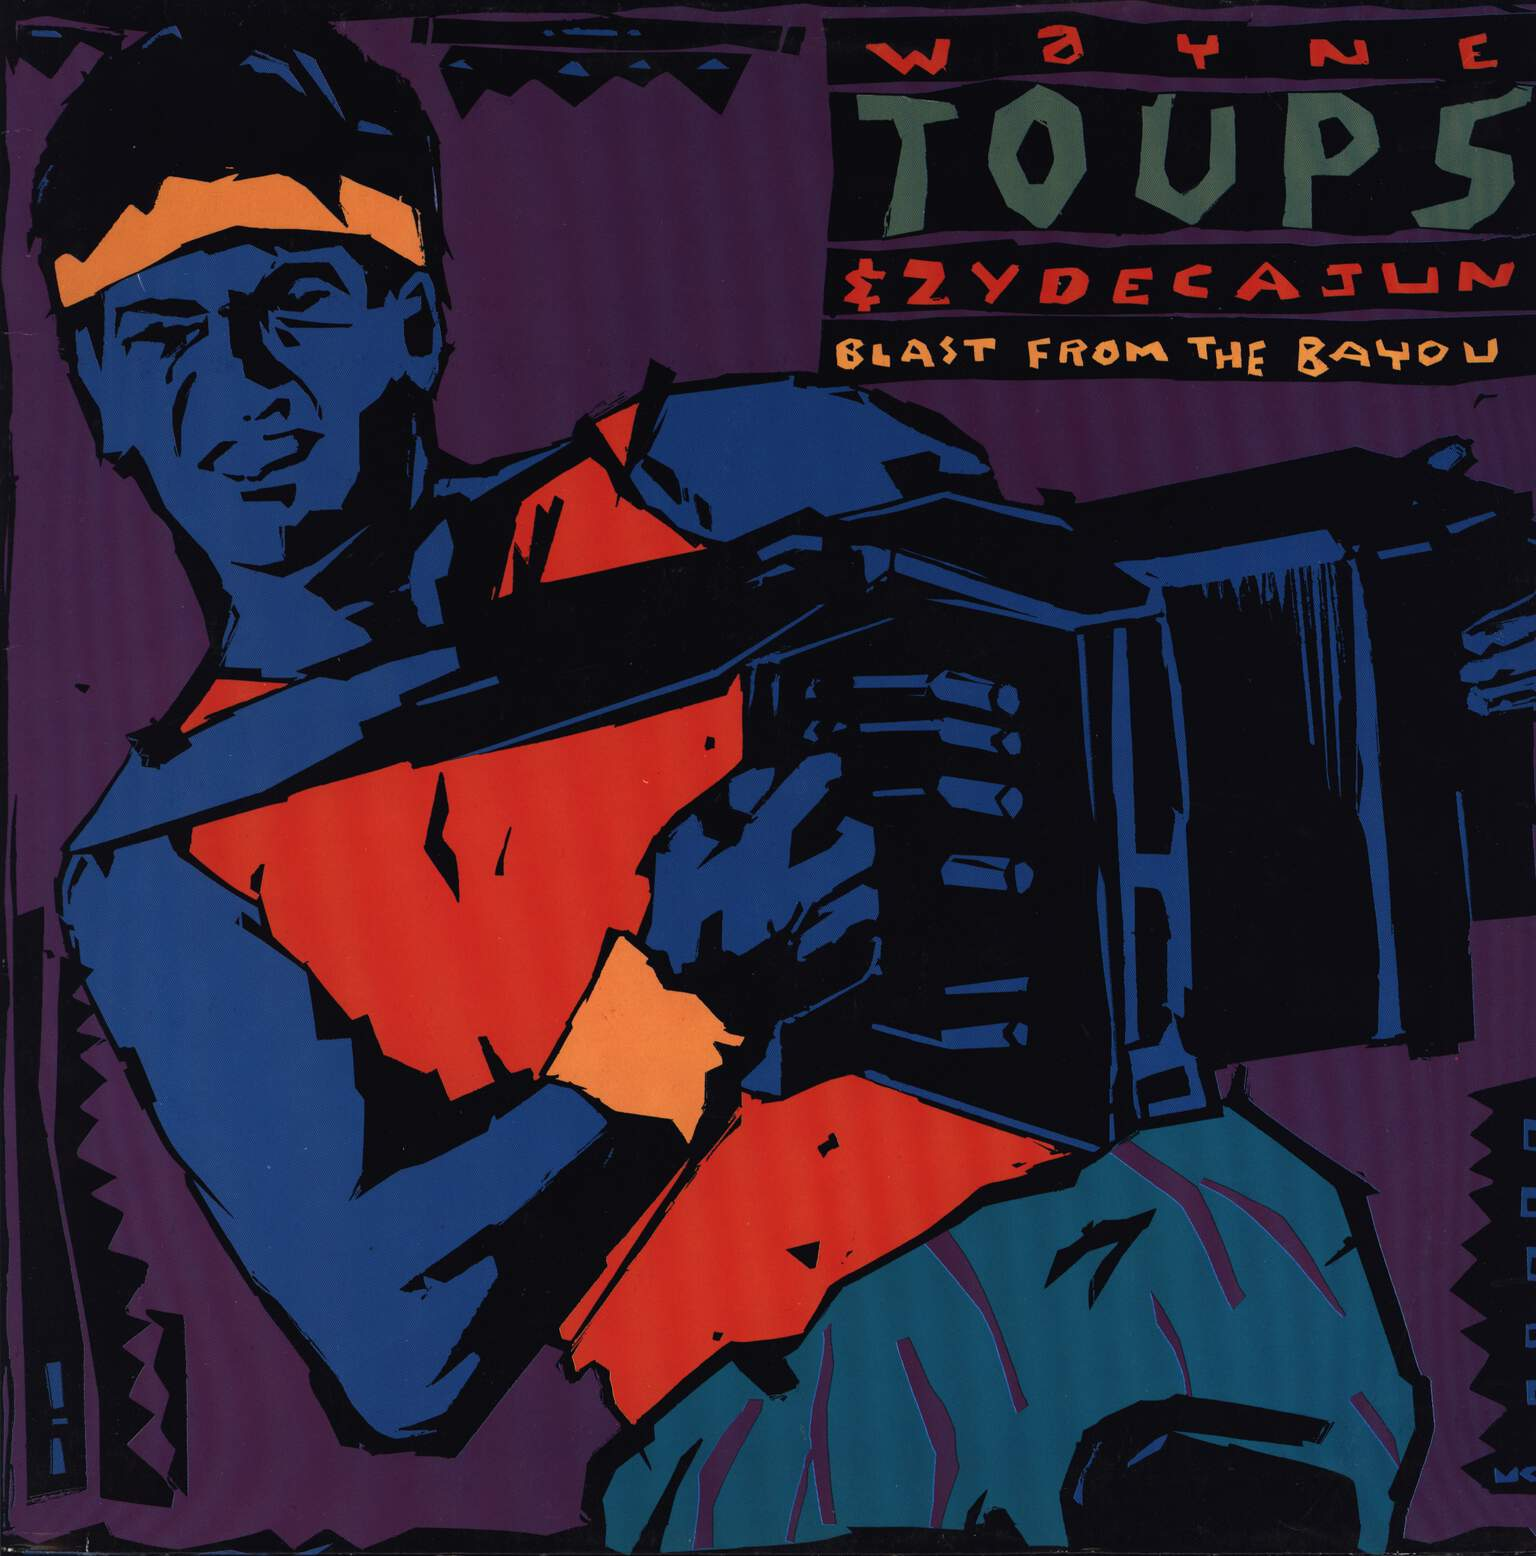 Wayne Toups & Zydecajun: Blast From The Bayou, LP (Vinyl)